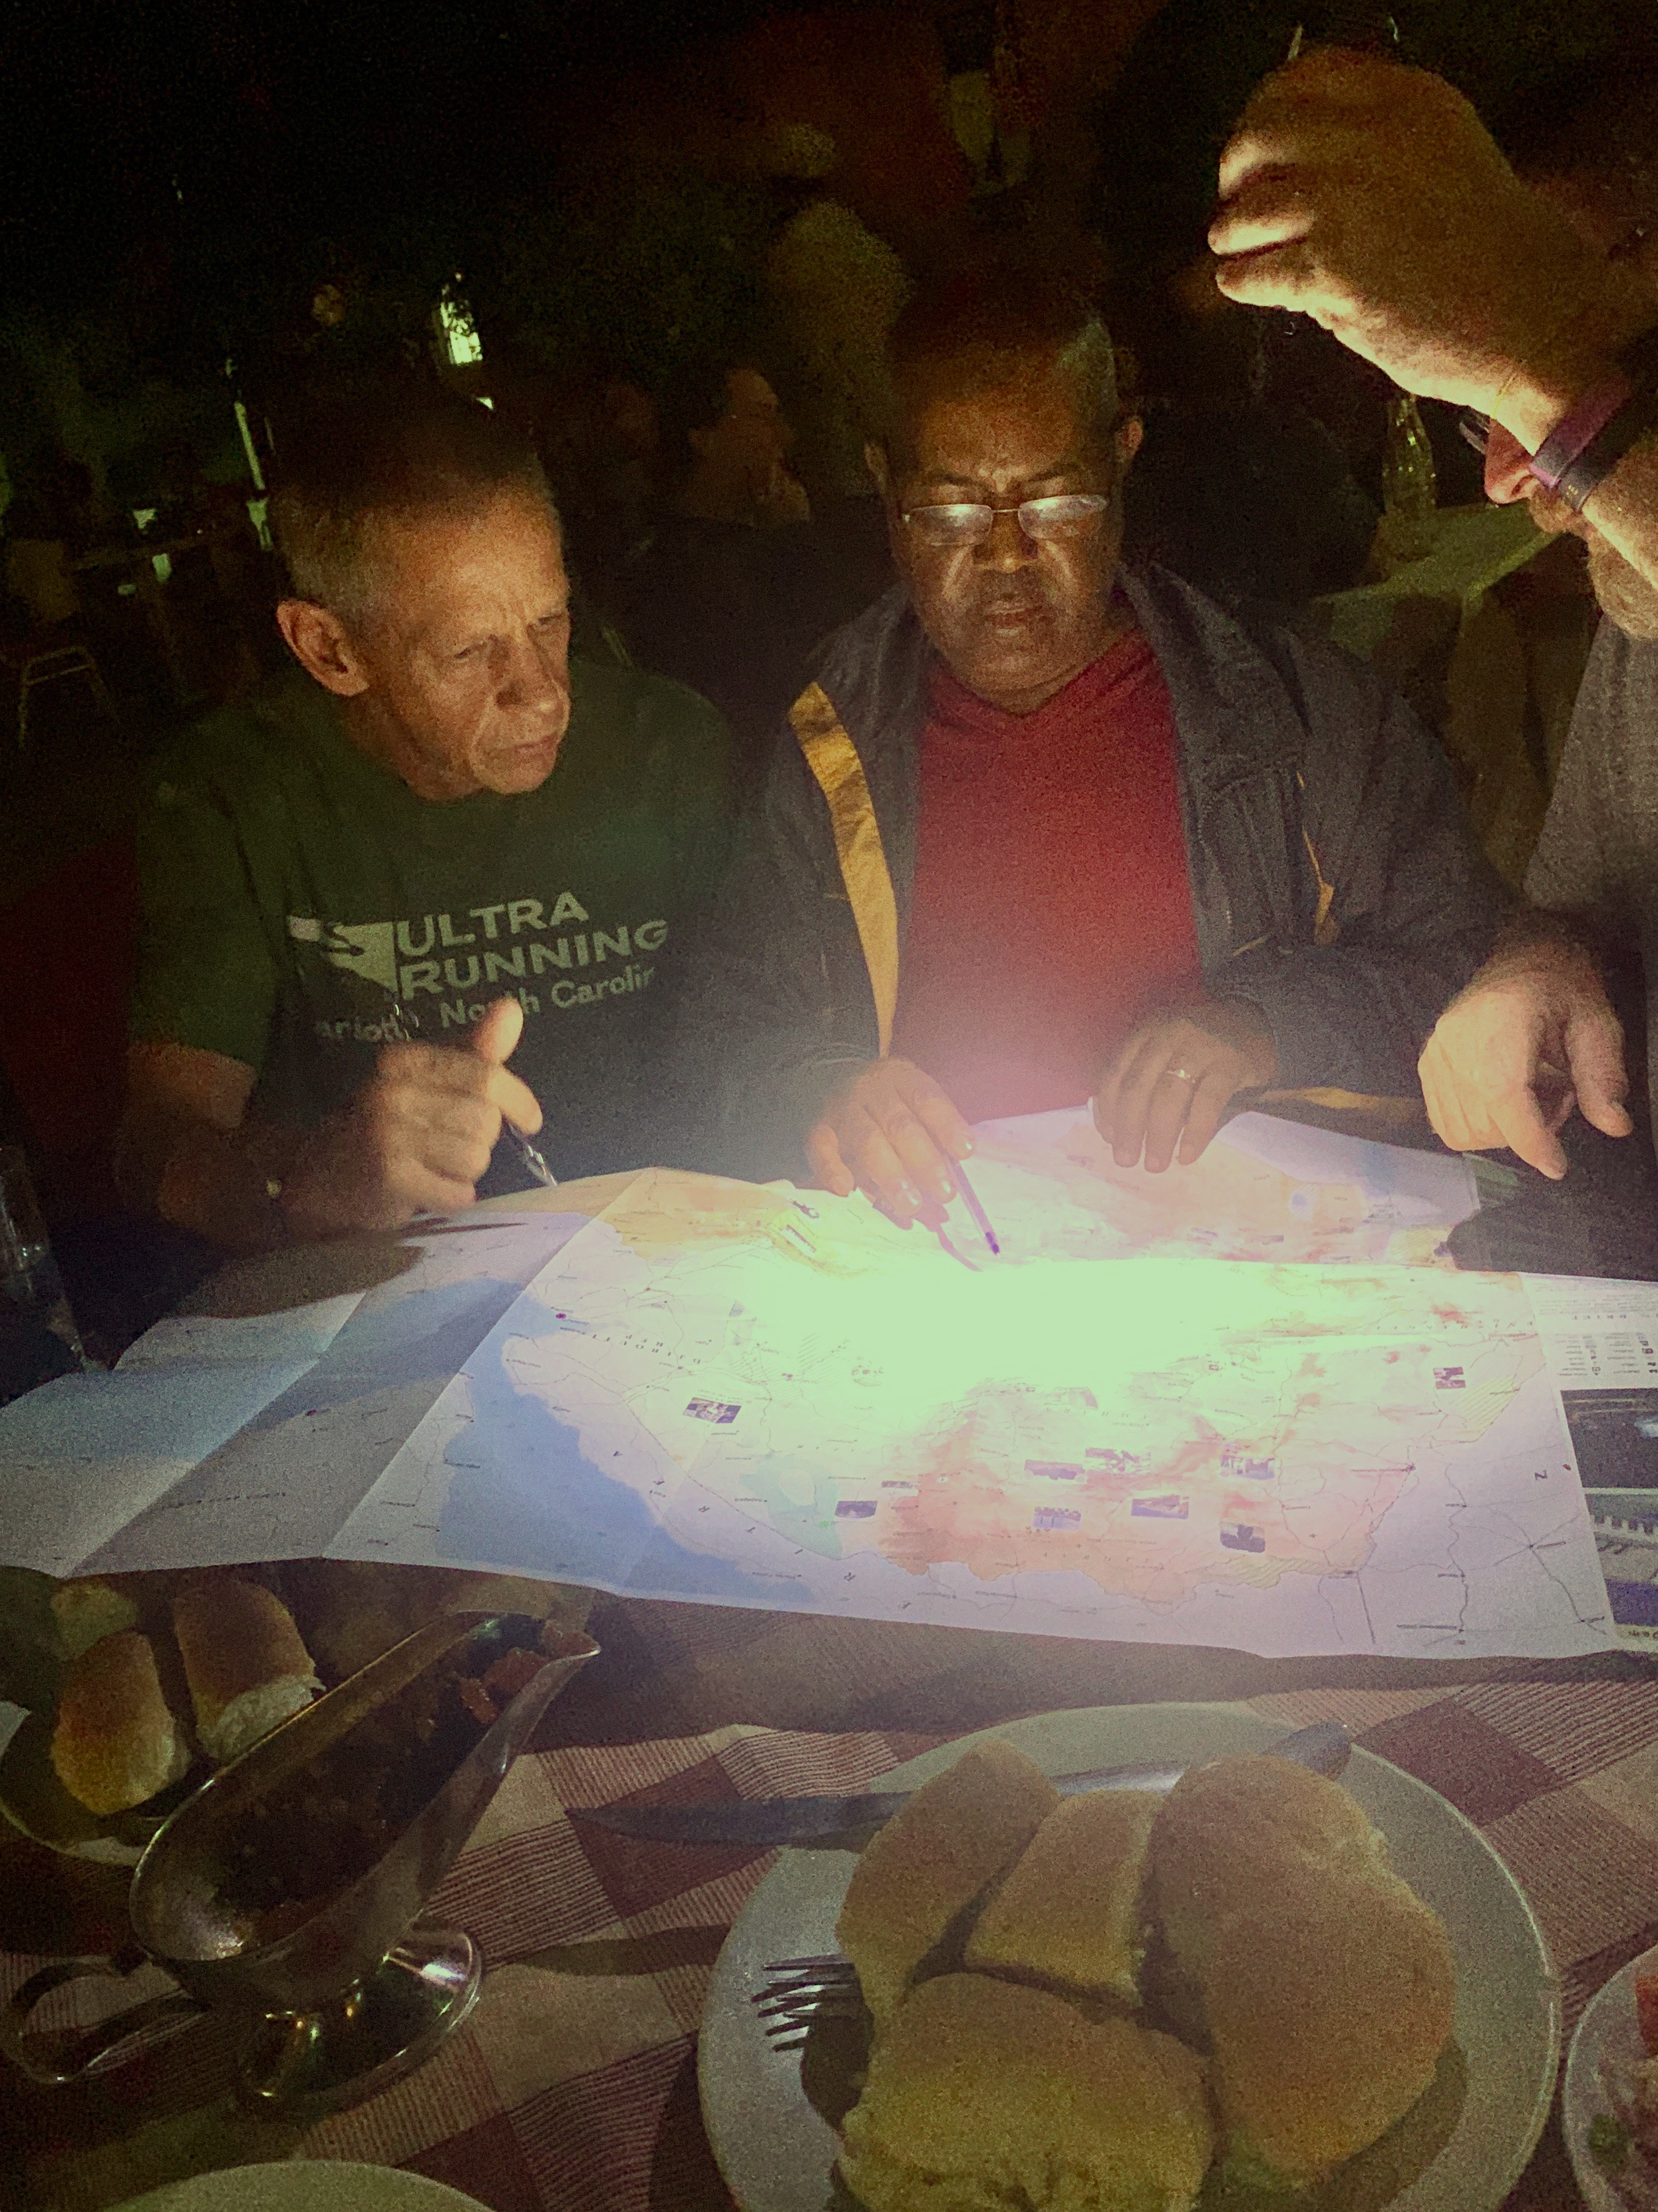 One of many late night map sessions with my team. Solomon is giving us his thoughts on the route, based on his local expertise.